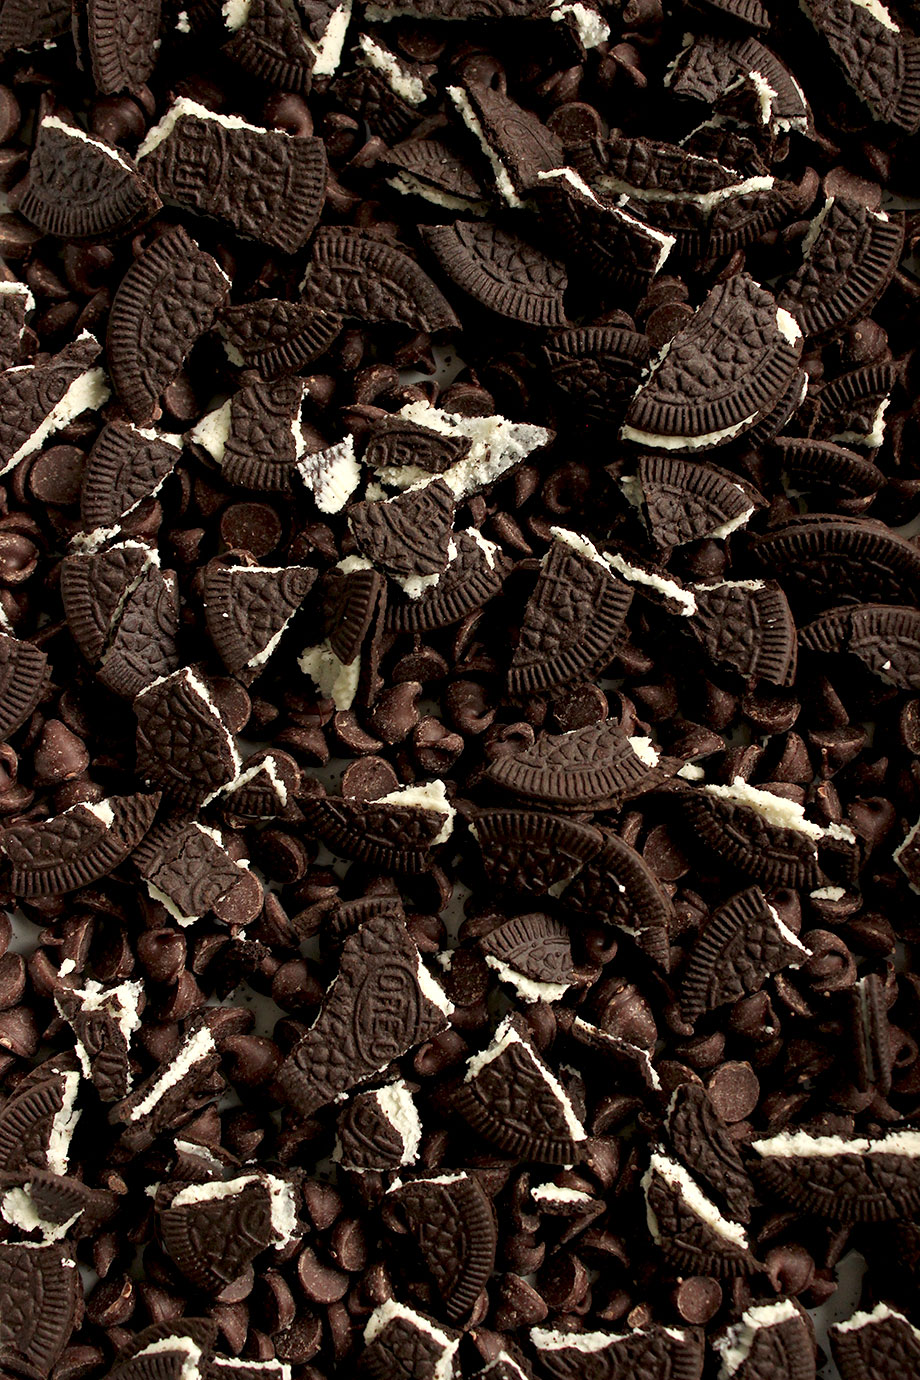 Crushed Oreos and chocolate by Glitter and Bubbles.